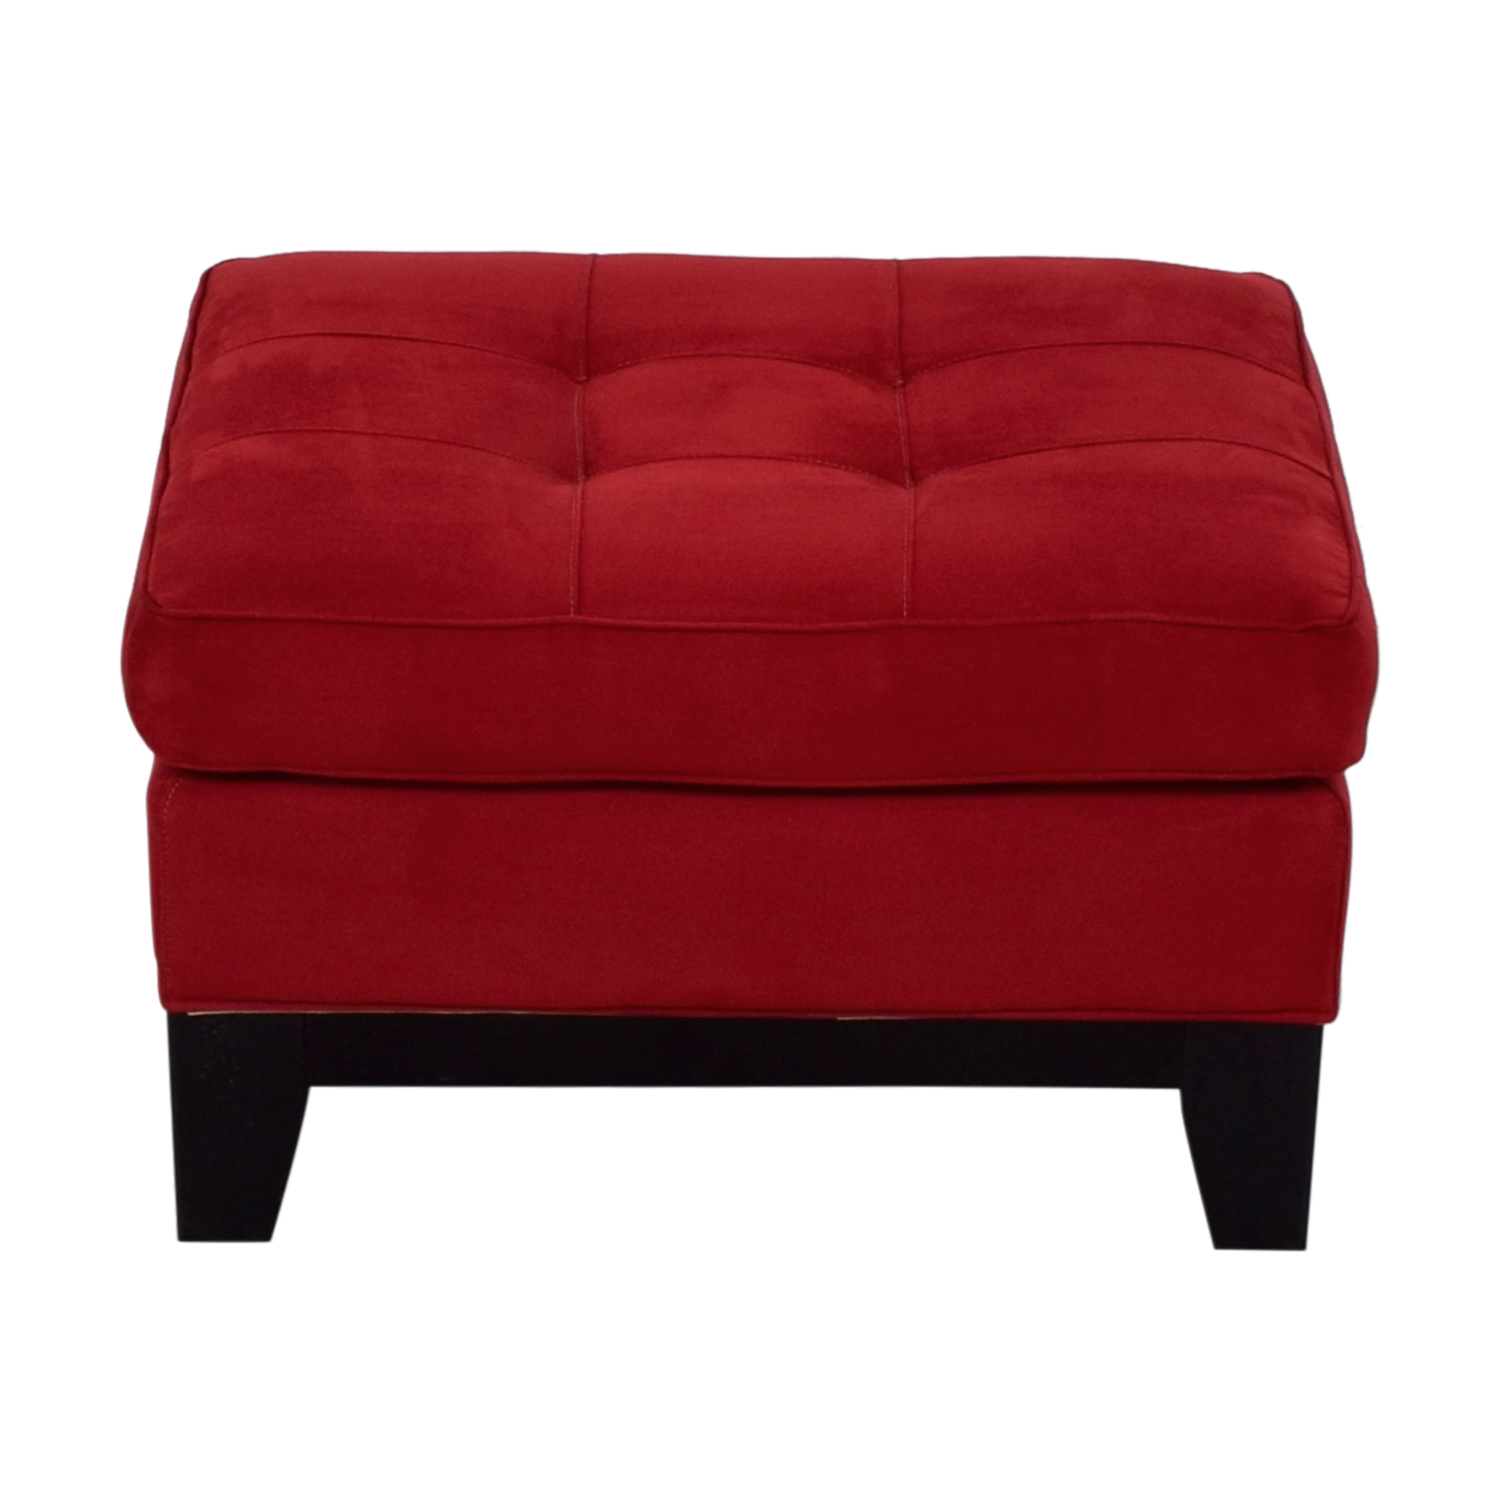 Raymour & Flanigan Raymour & Flanigan Red Microfiber Tufted Ottoman discount